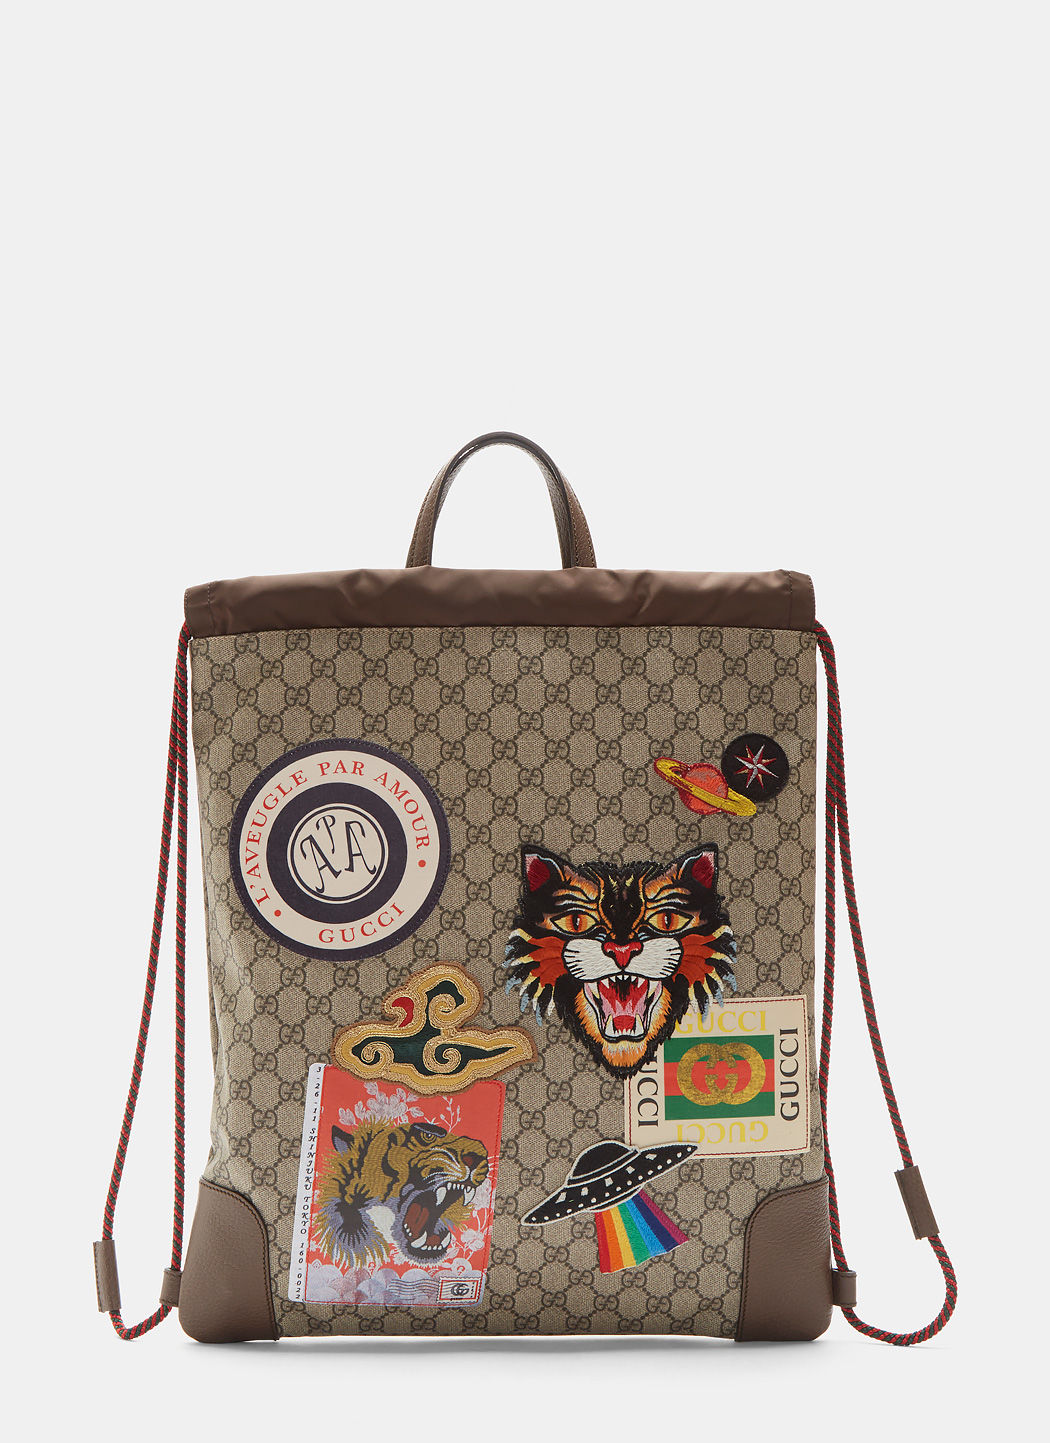 Gucci Courrier Soft Gg Supreme Drawstring Backpack In Neutrals ... 78f505f091de8